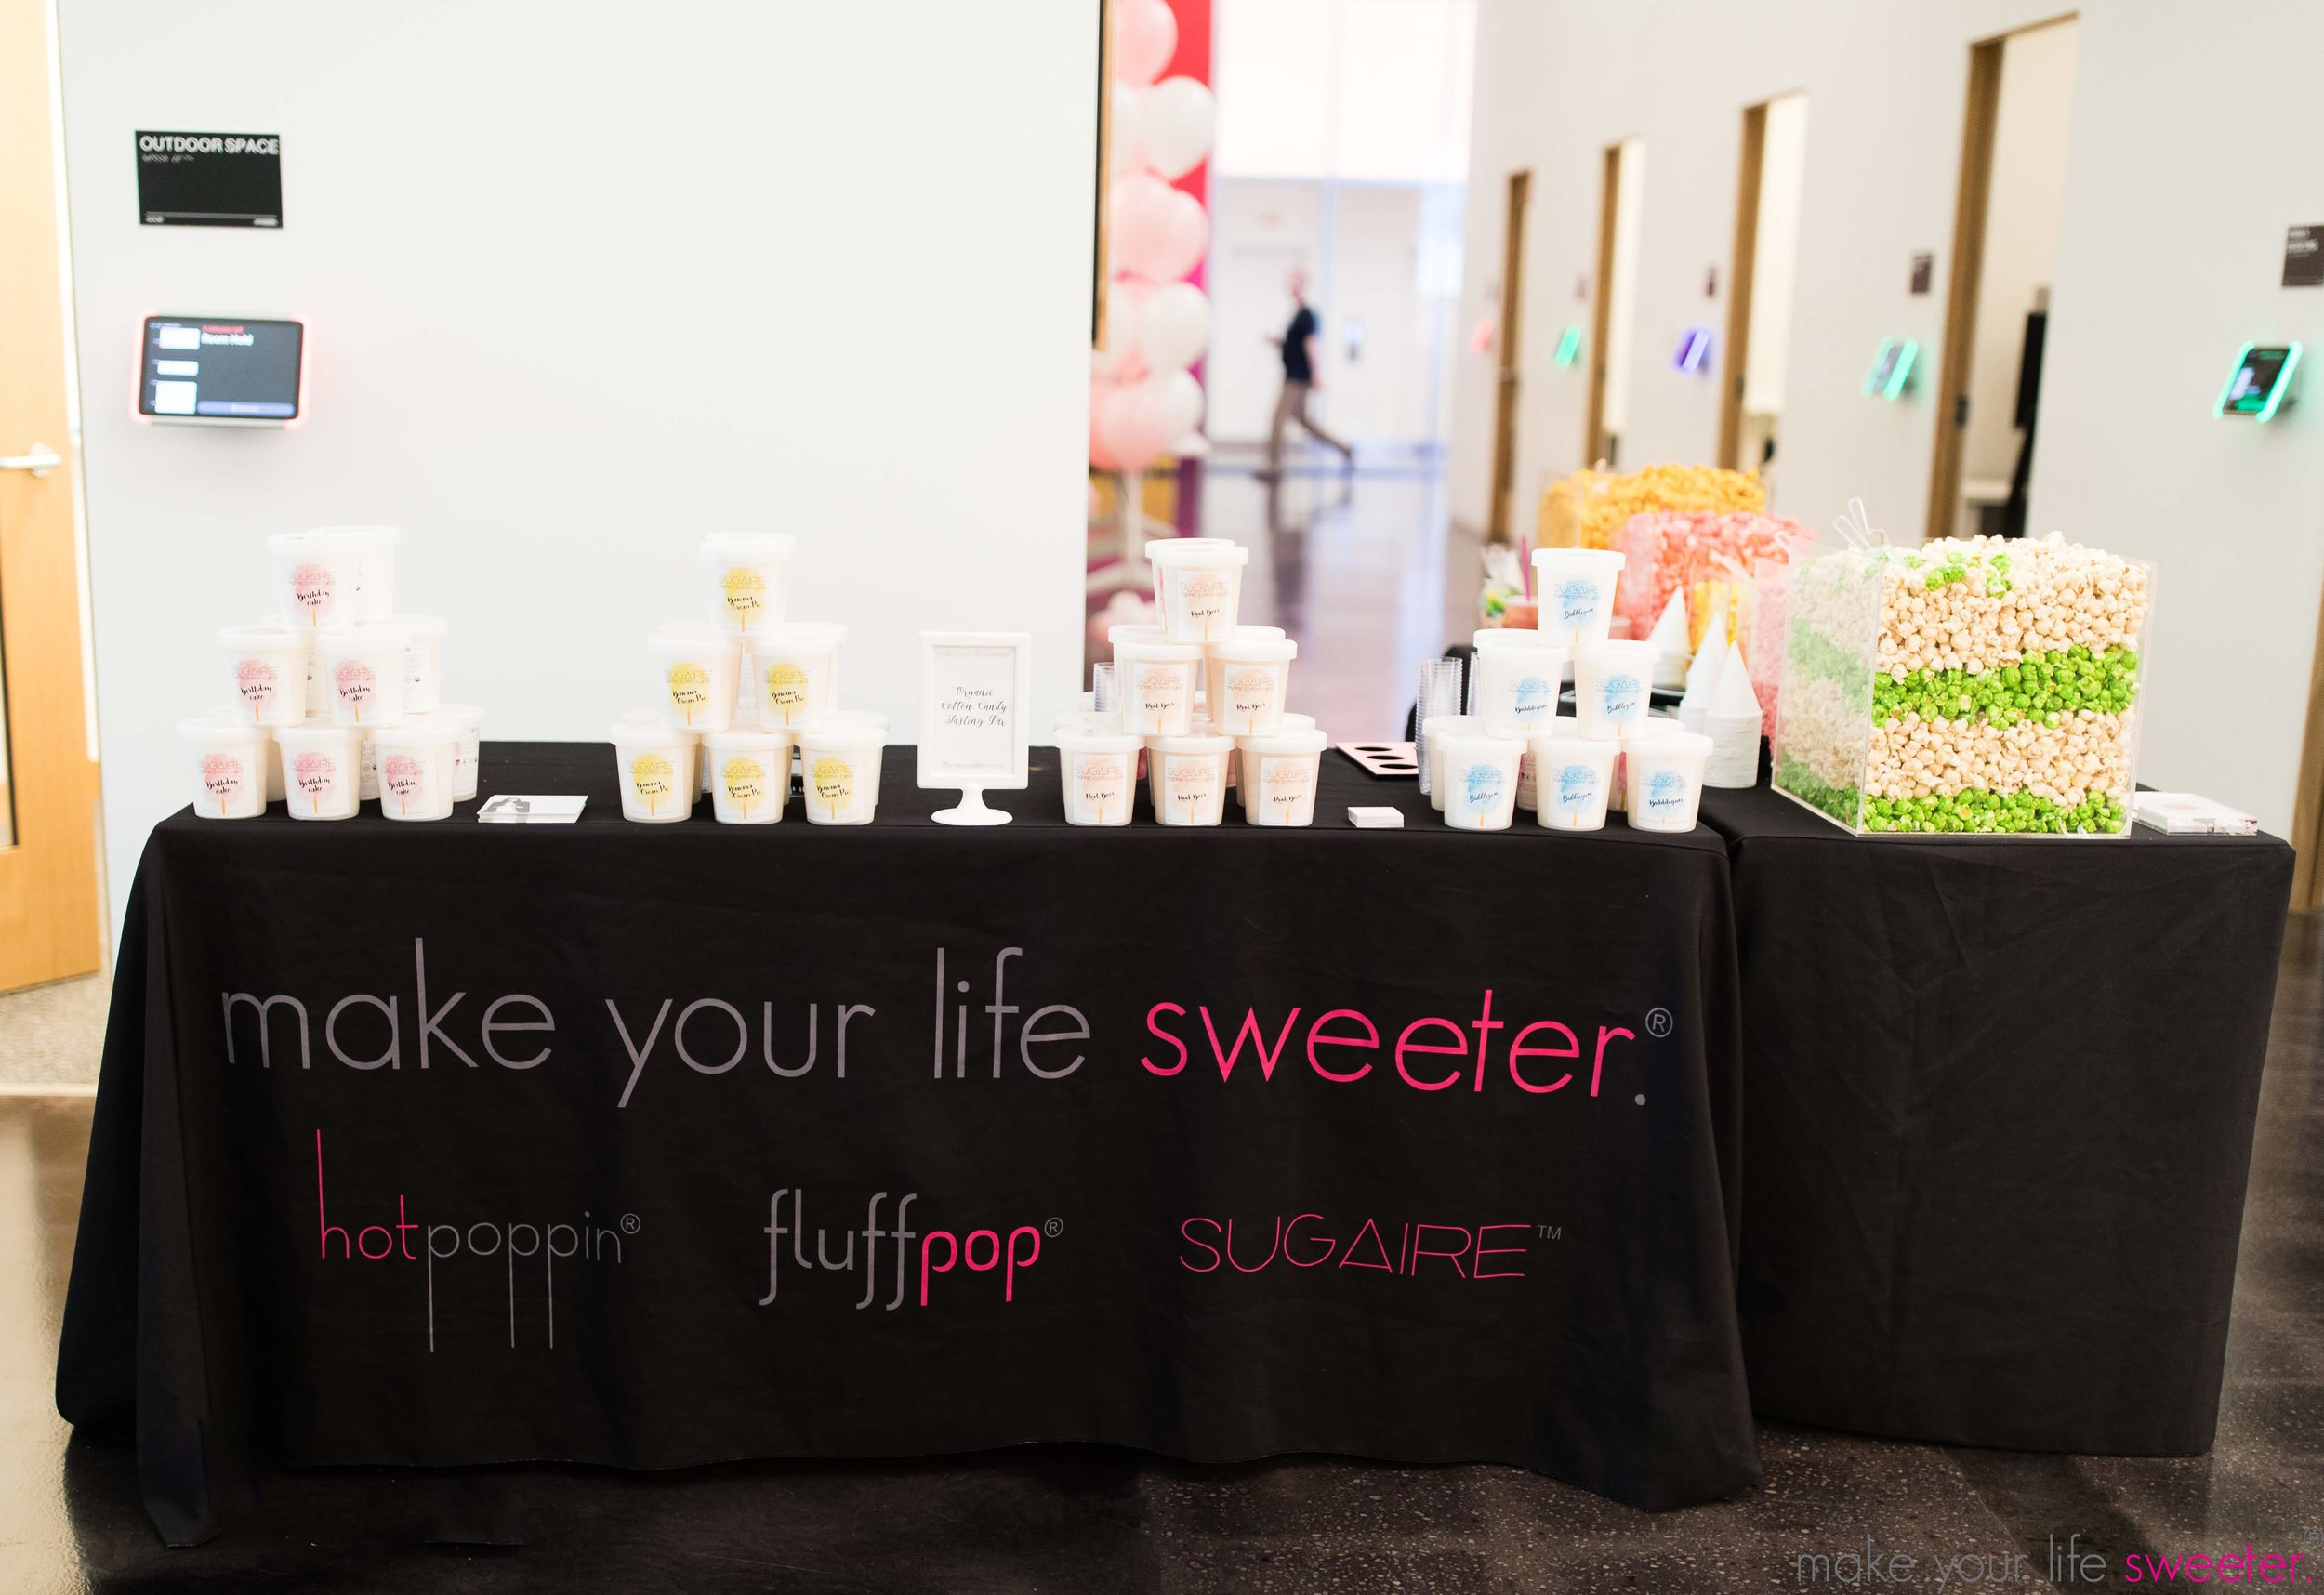 Make Your Life Sweeter Events - Facebook NYC - Sugaire Organic Cotton Candy Tasting Bar with Customized Facebook Hashtag Flags